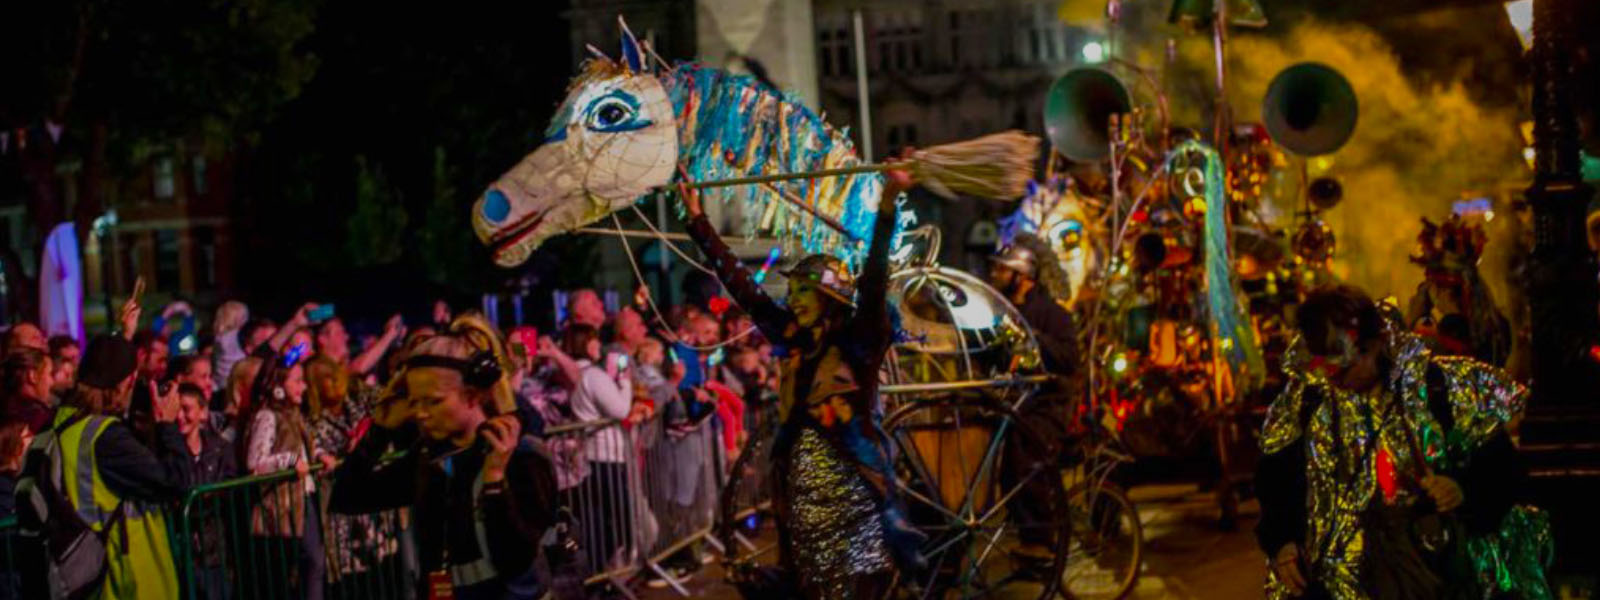 Image of Light Parade Giant Horse Puppet